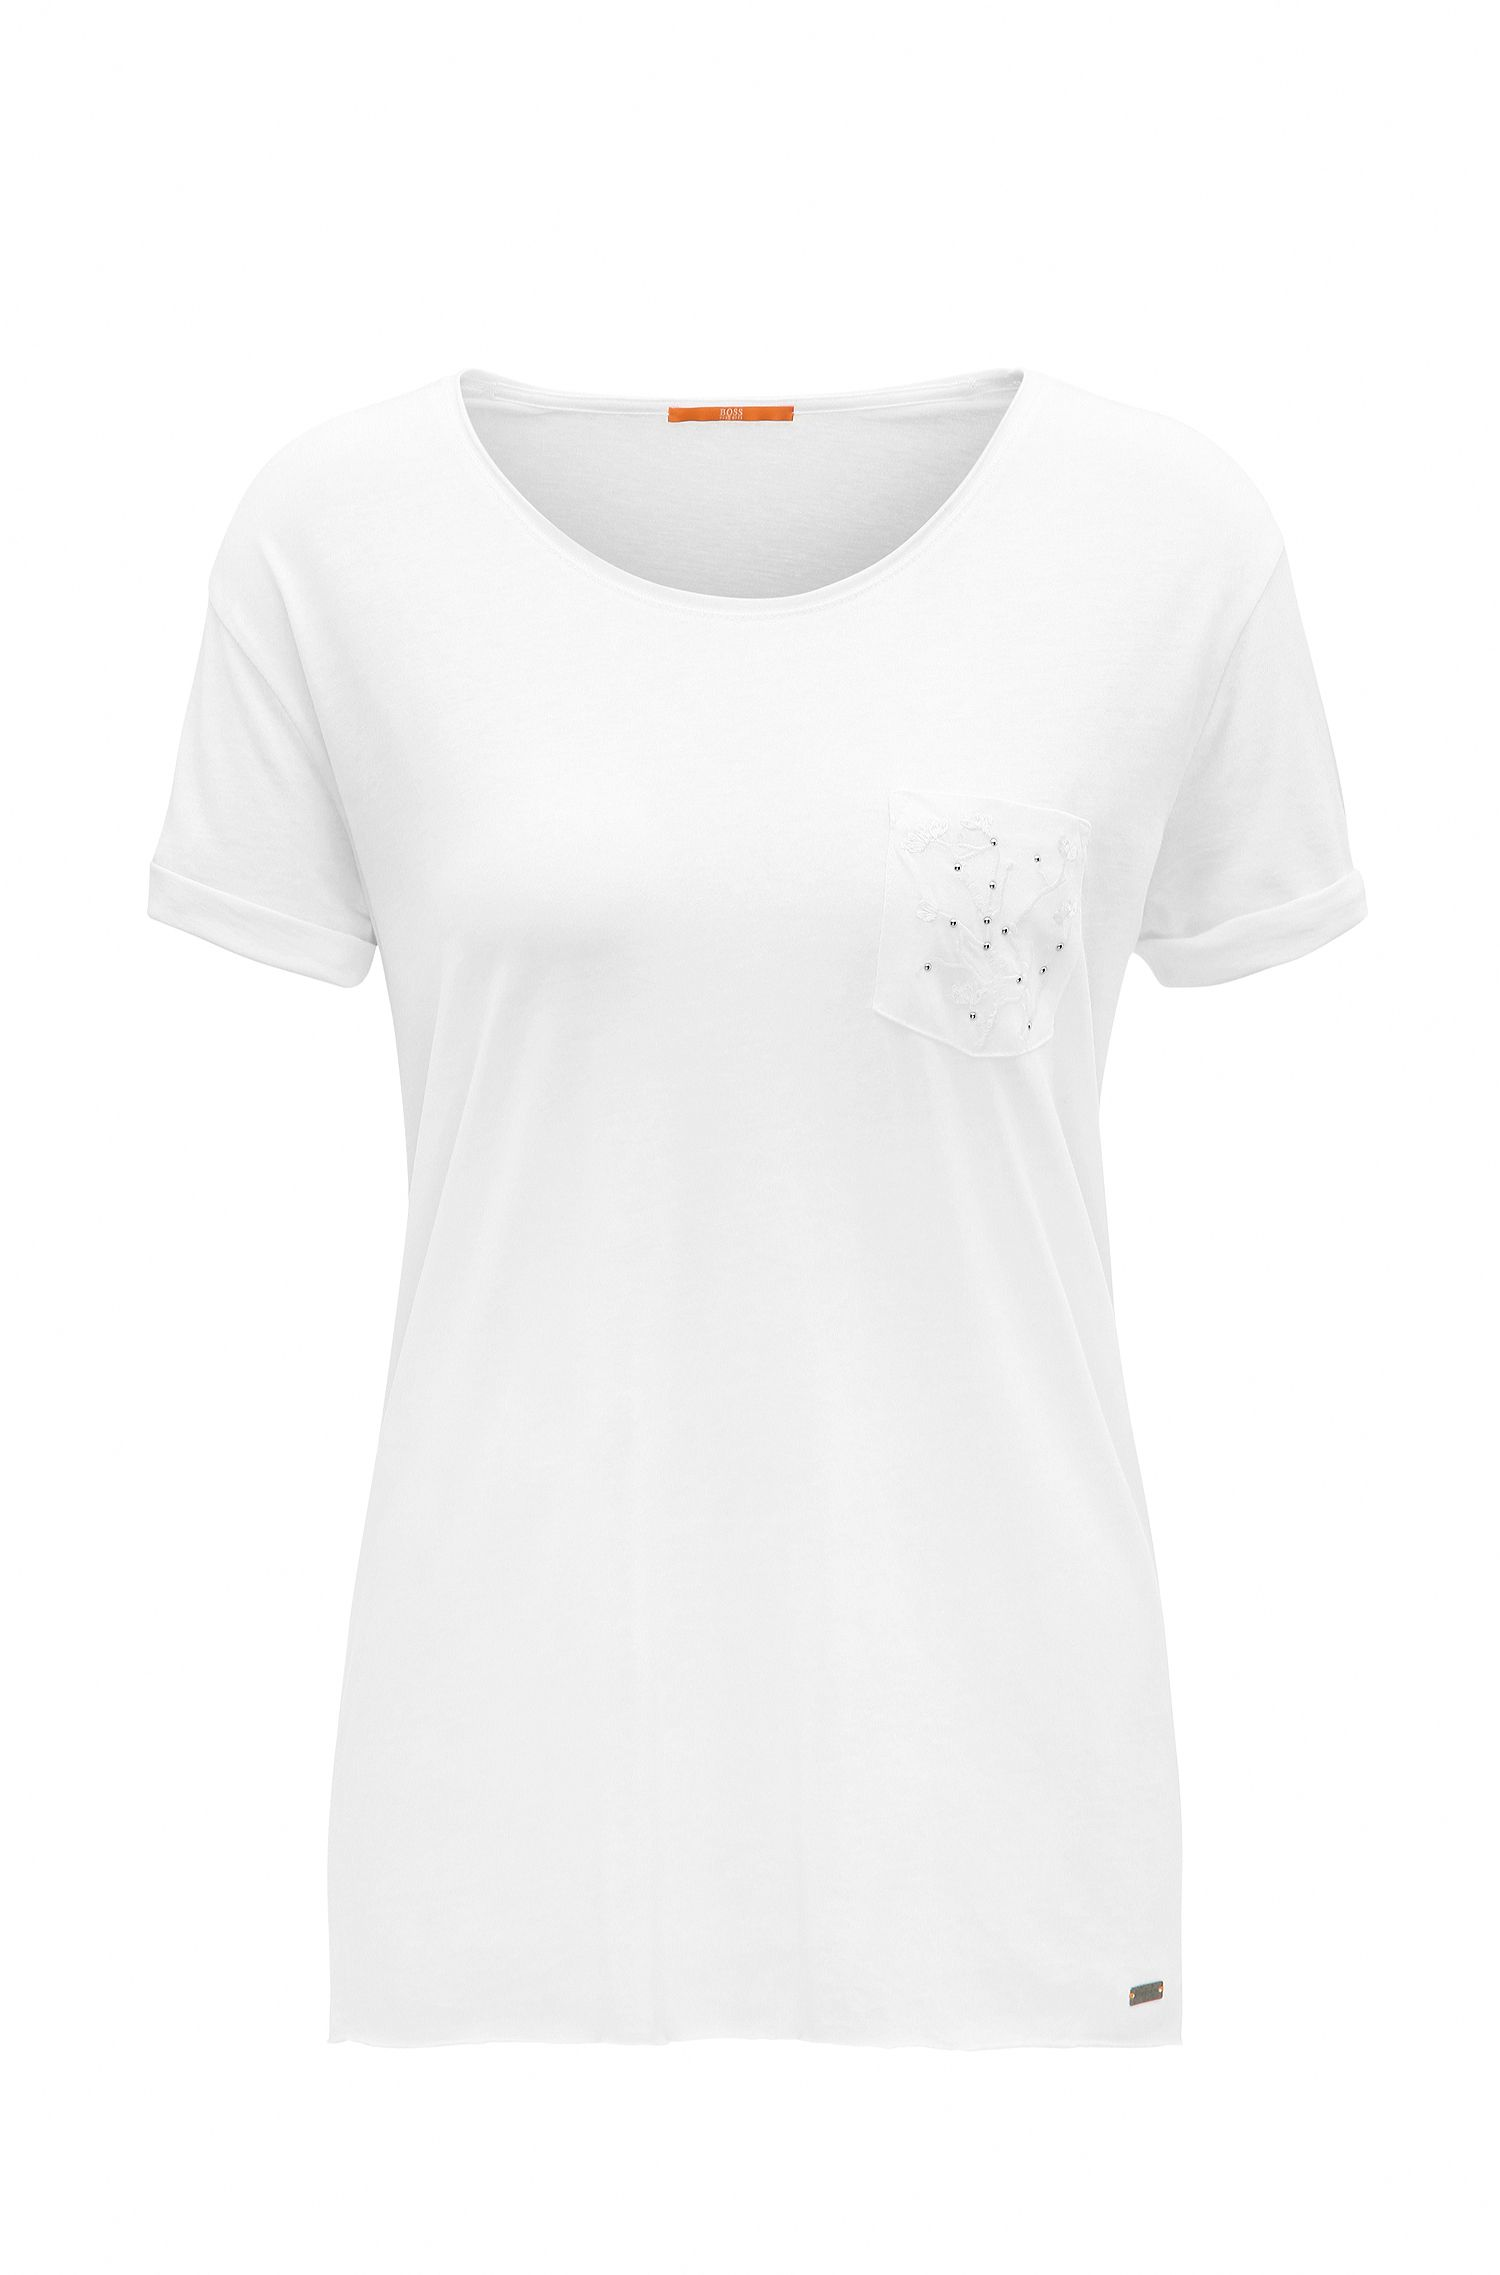 Relaxed-fit T-shirt in fluid fabric